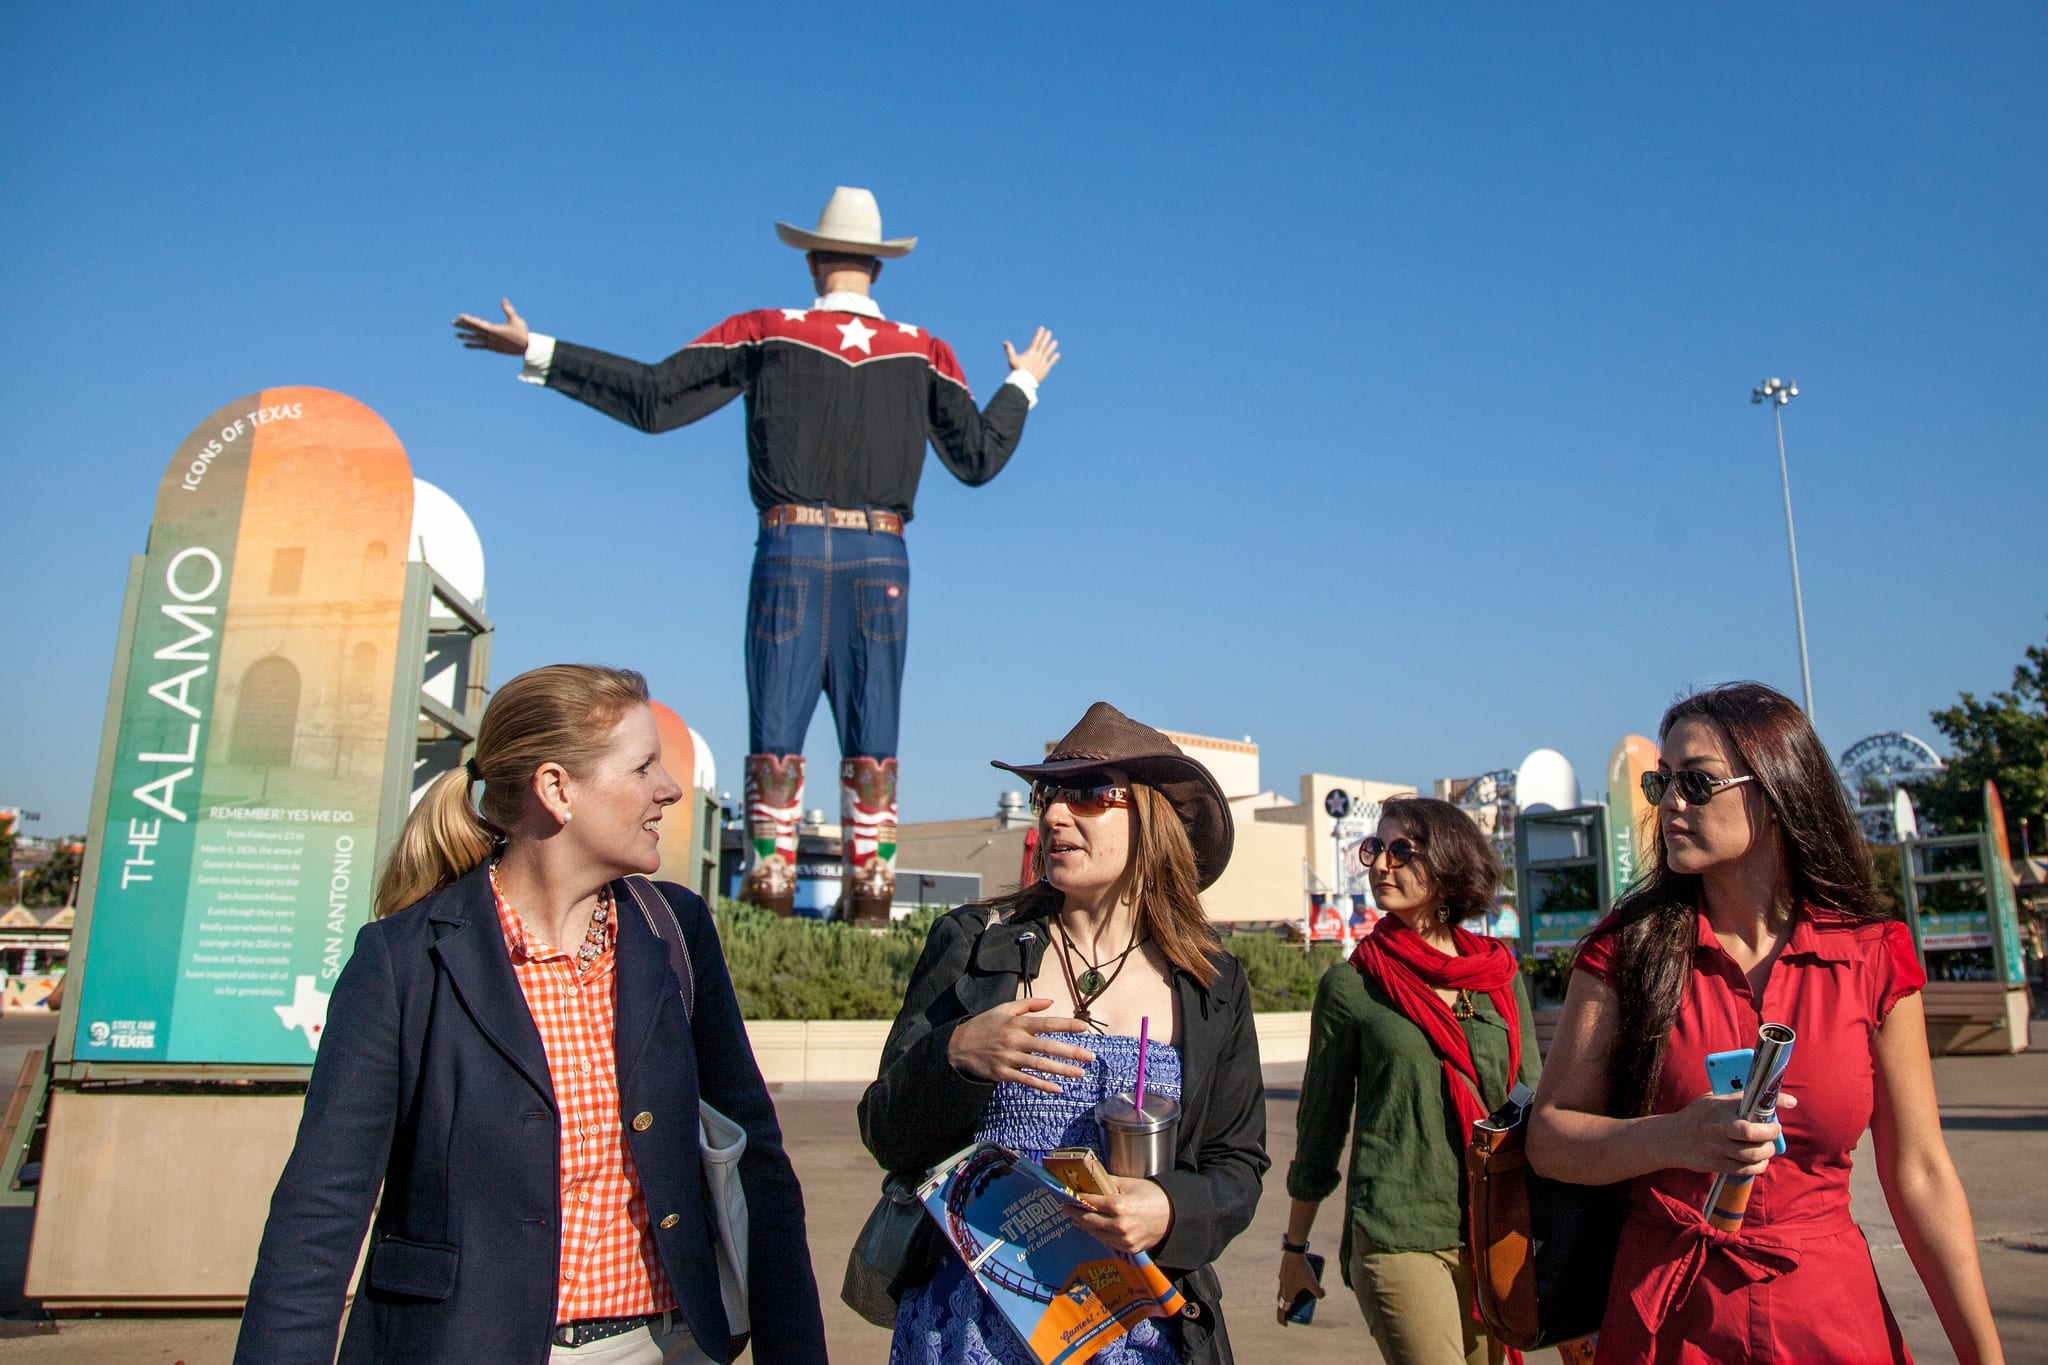 Kathleen Gallagher is an Arts Management and Arts Entrepreneurship professor at SMU. Gallagher took her International Comparative Cultural Policy class to the State Fair of Texas in Fair Park.